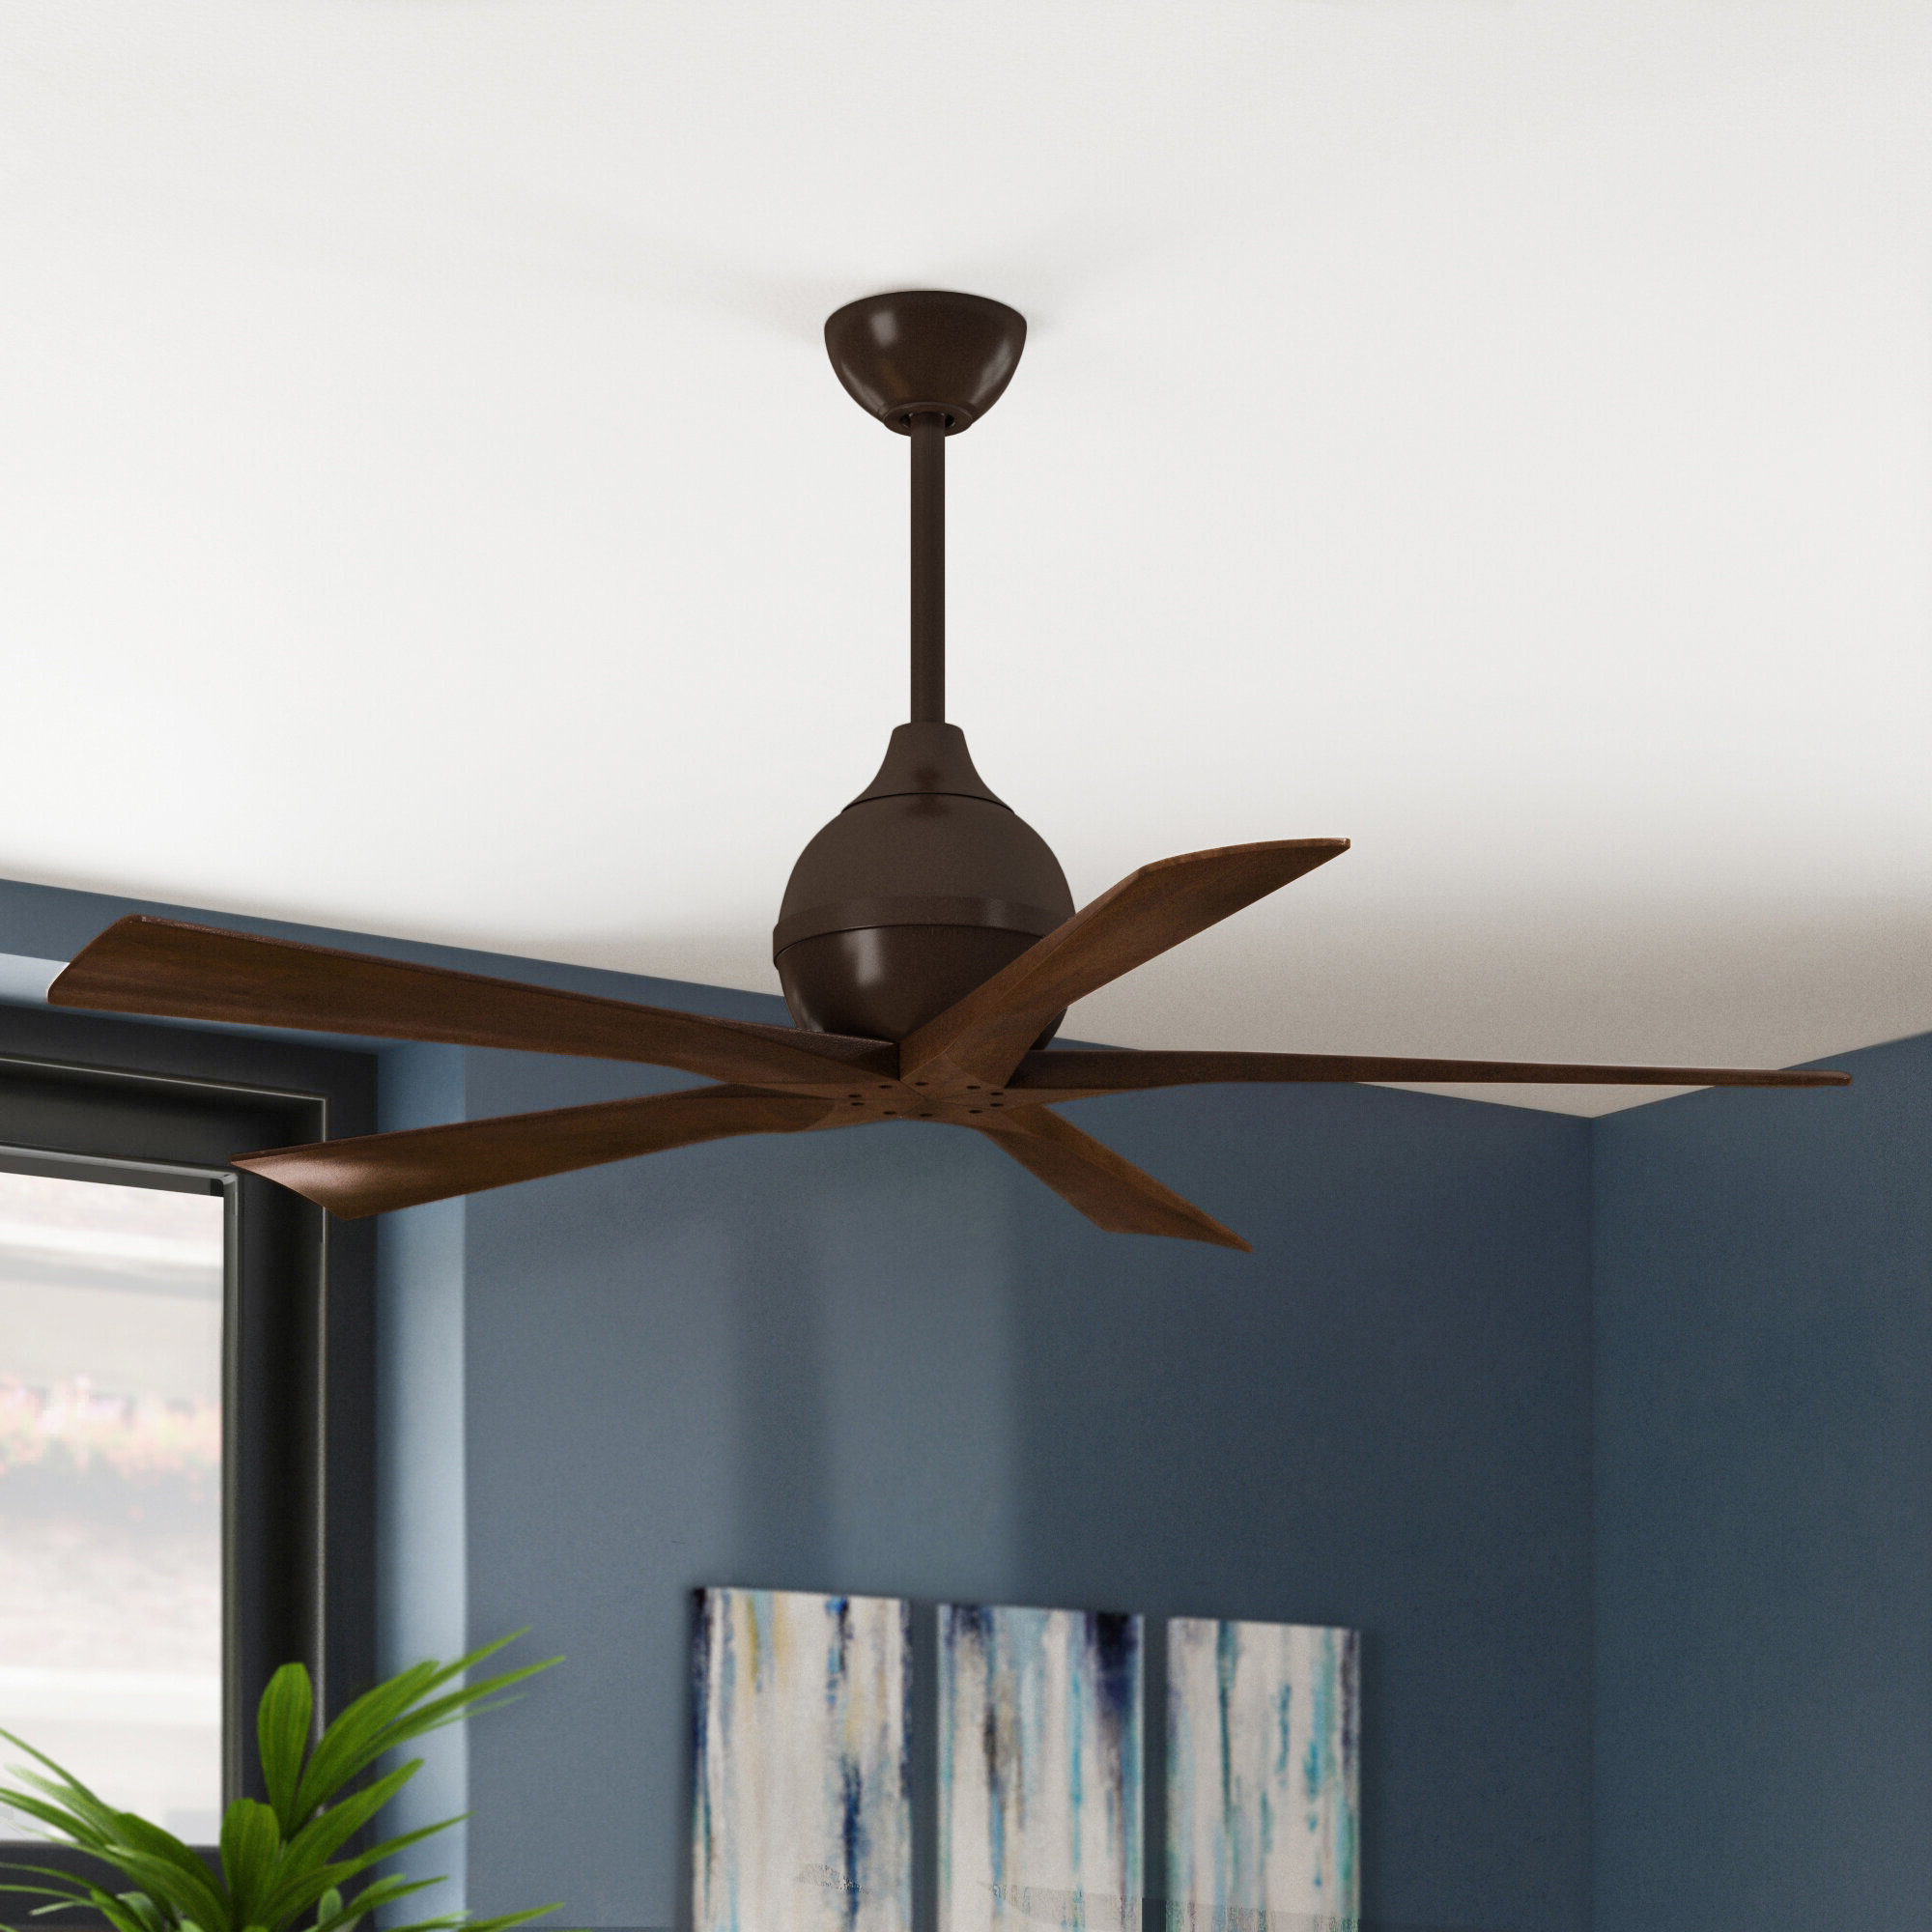 "Widely Used Tyree 3 Blade Ceiling Fans Throughout 52"" Tyree 5 Blade Ceiling Fan With Wall Remote (View 4 of 20)"